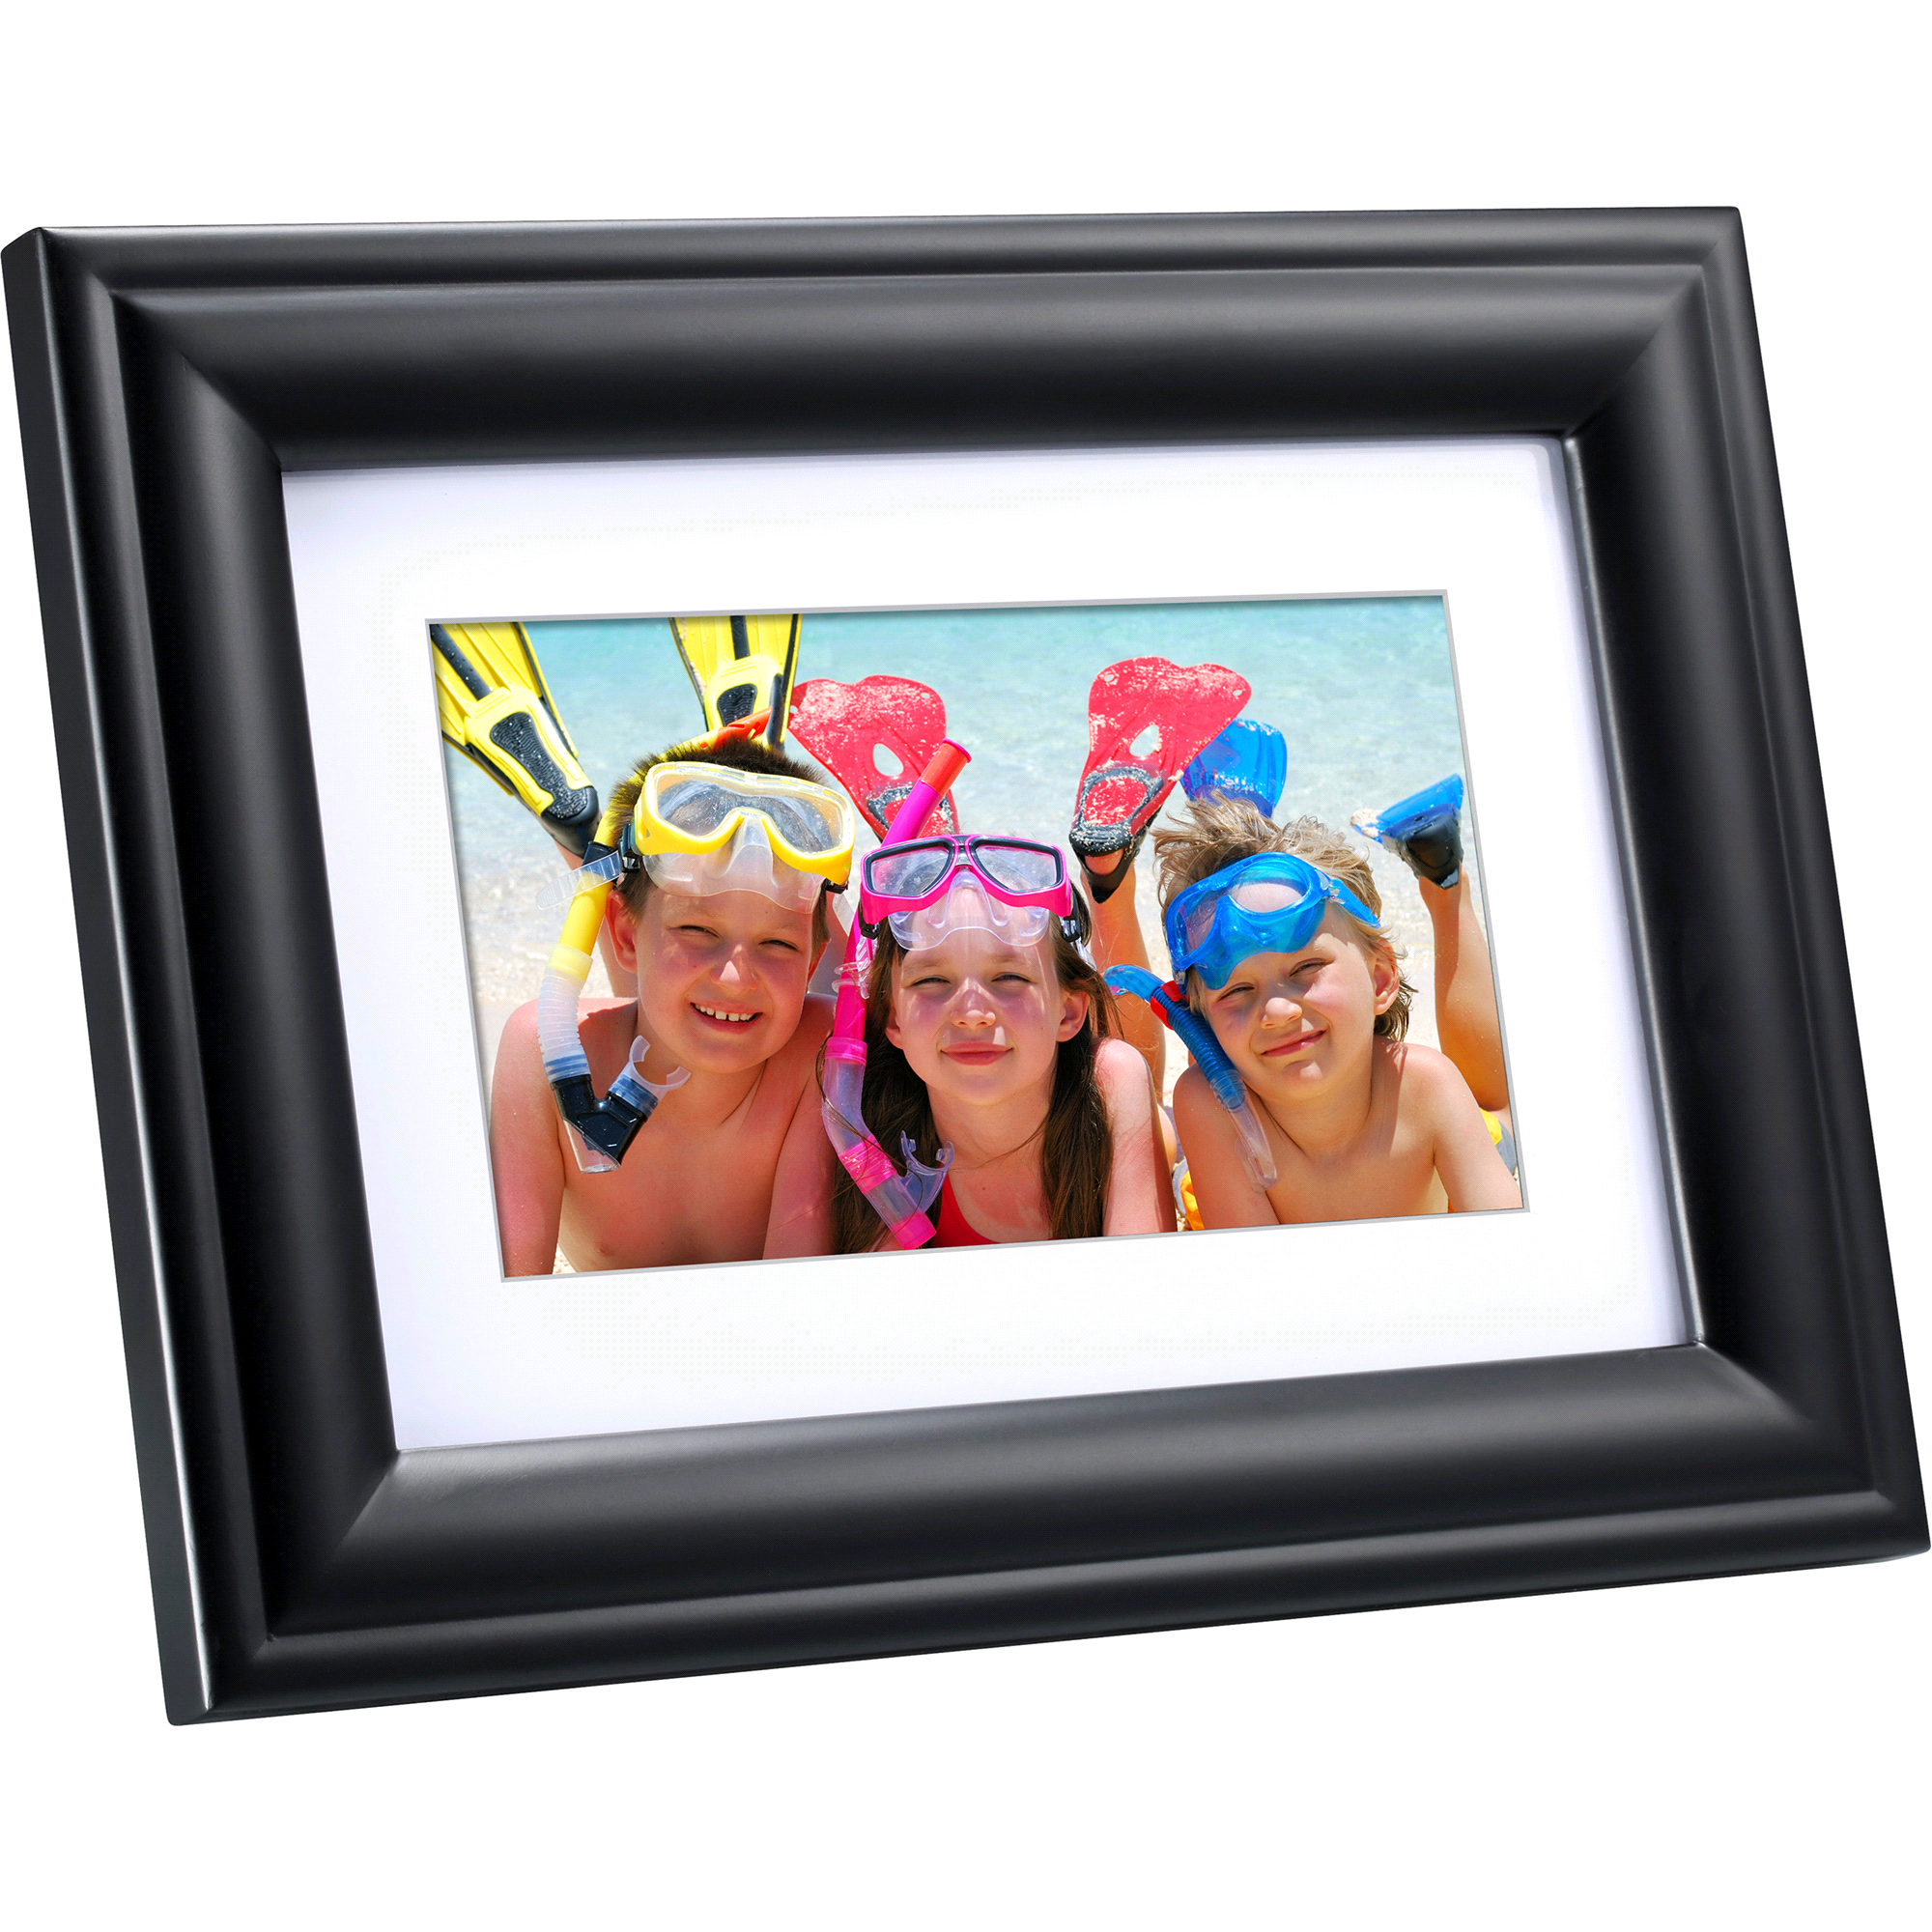 Polaroid 7 inch Digital Photo Frame- Black Wood Frame | Meijer.com